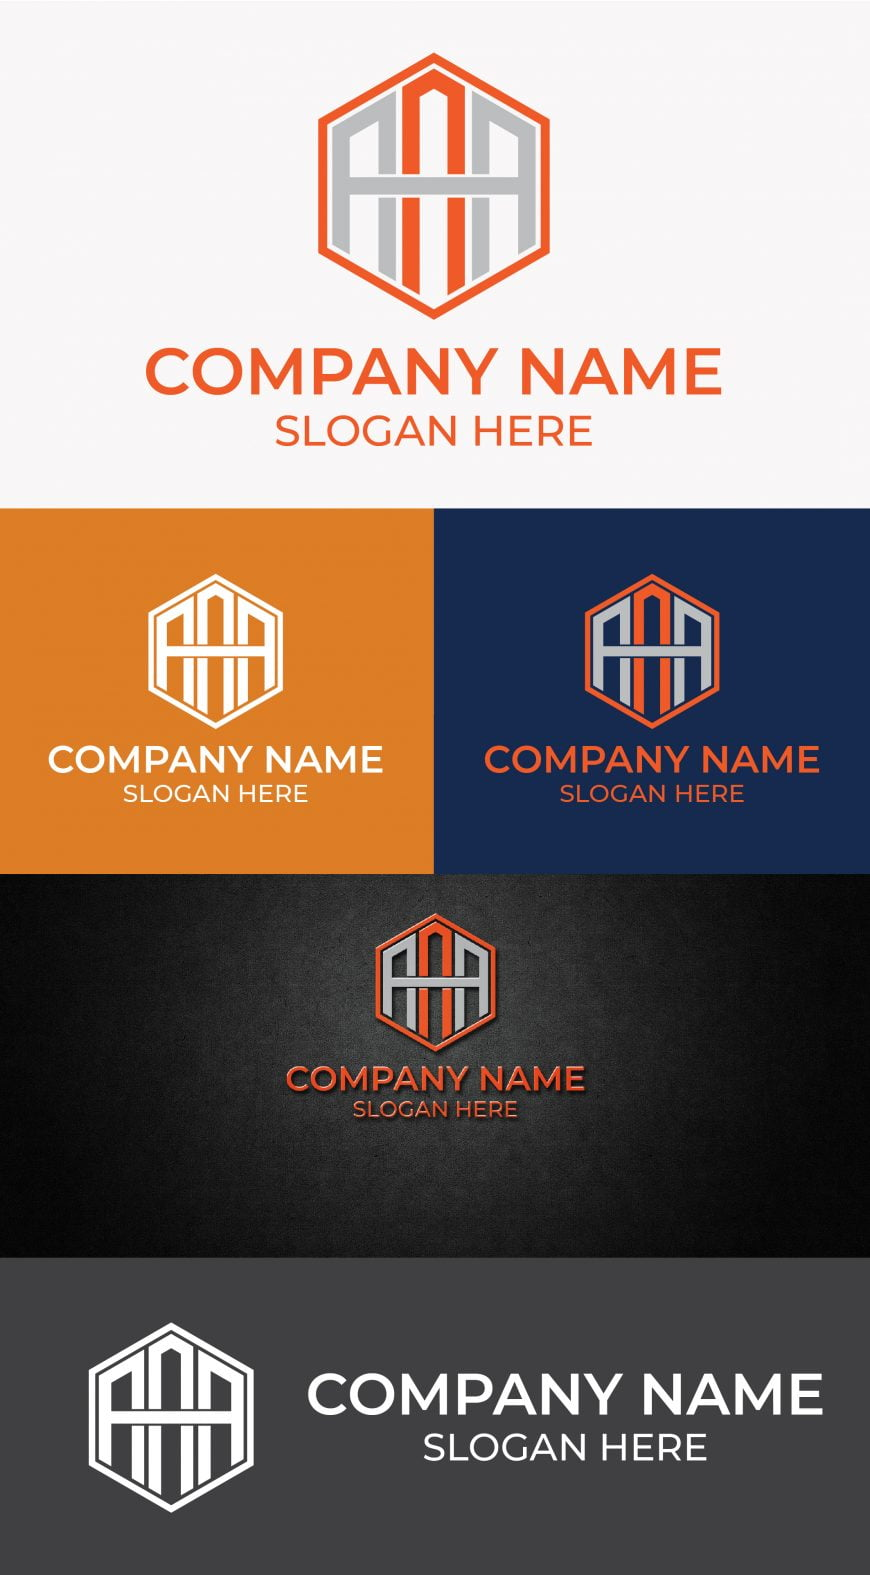 AAA-LOGO-TEMPLATE-scaled